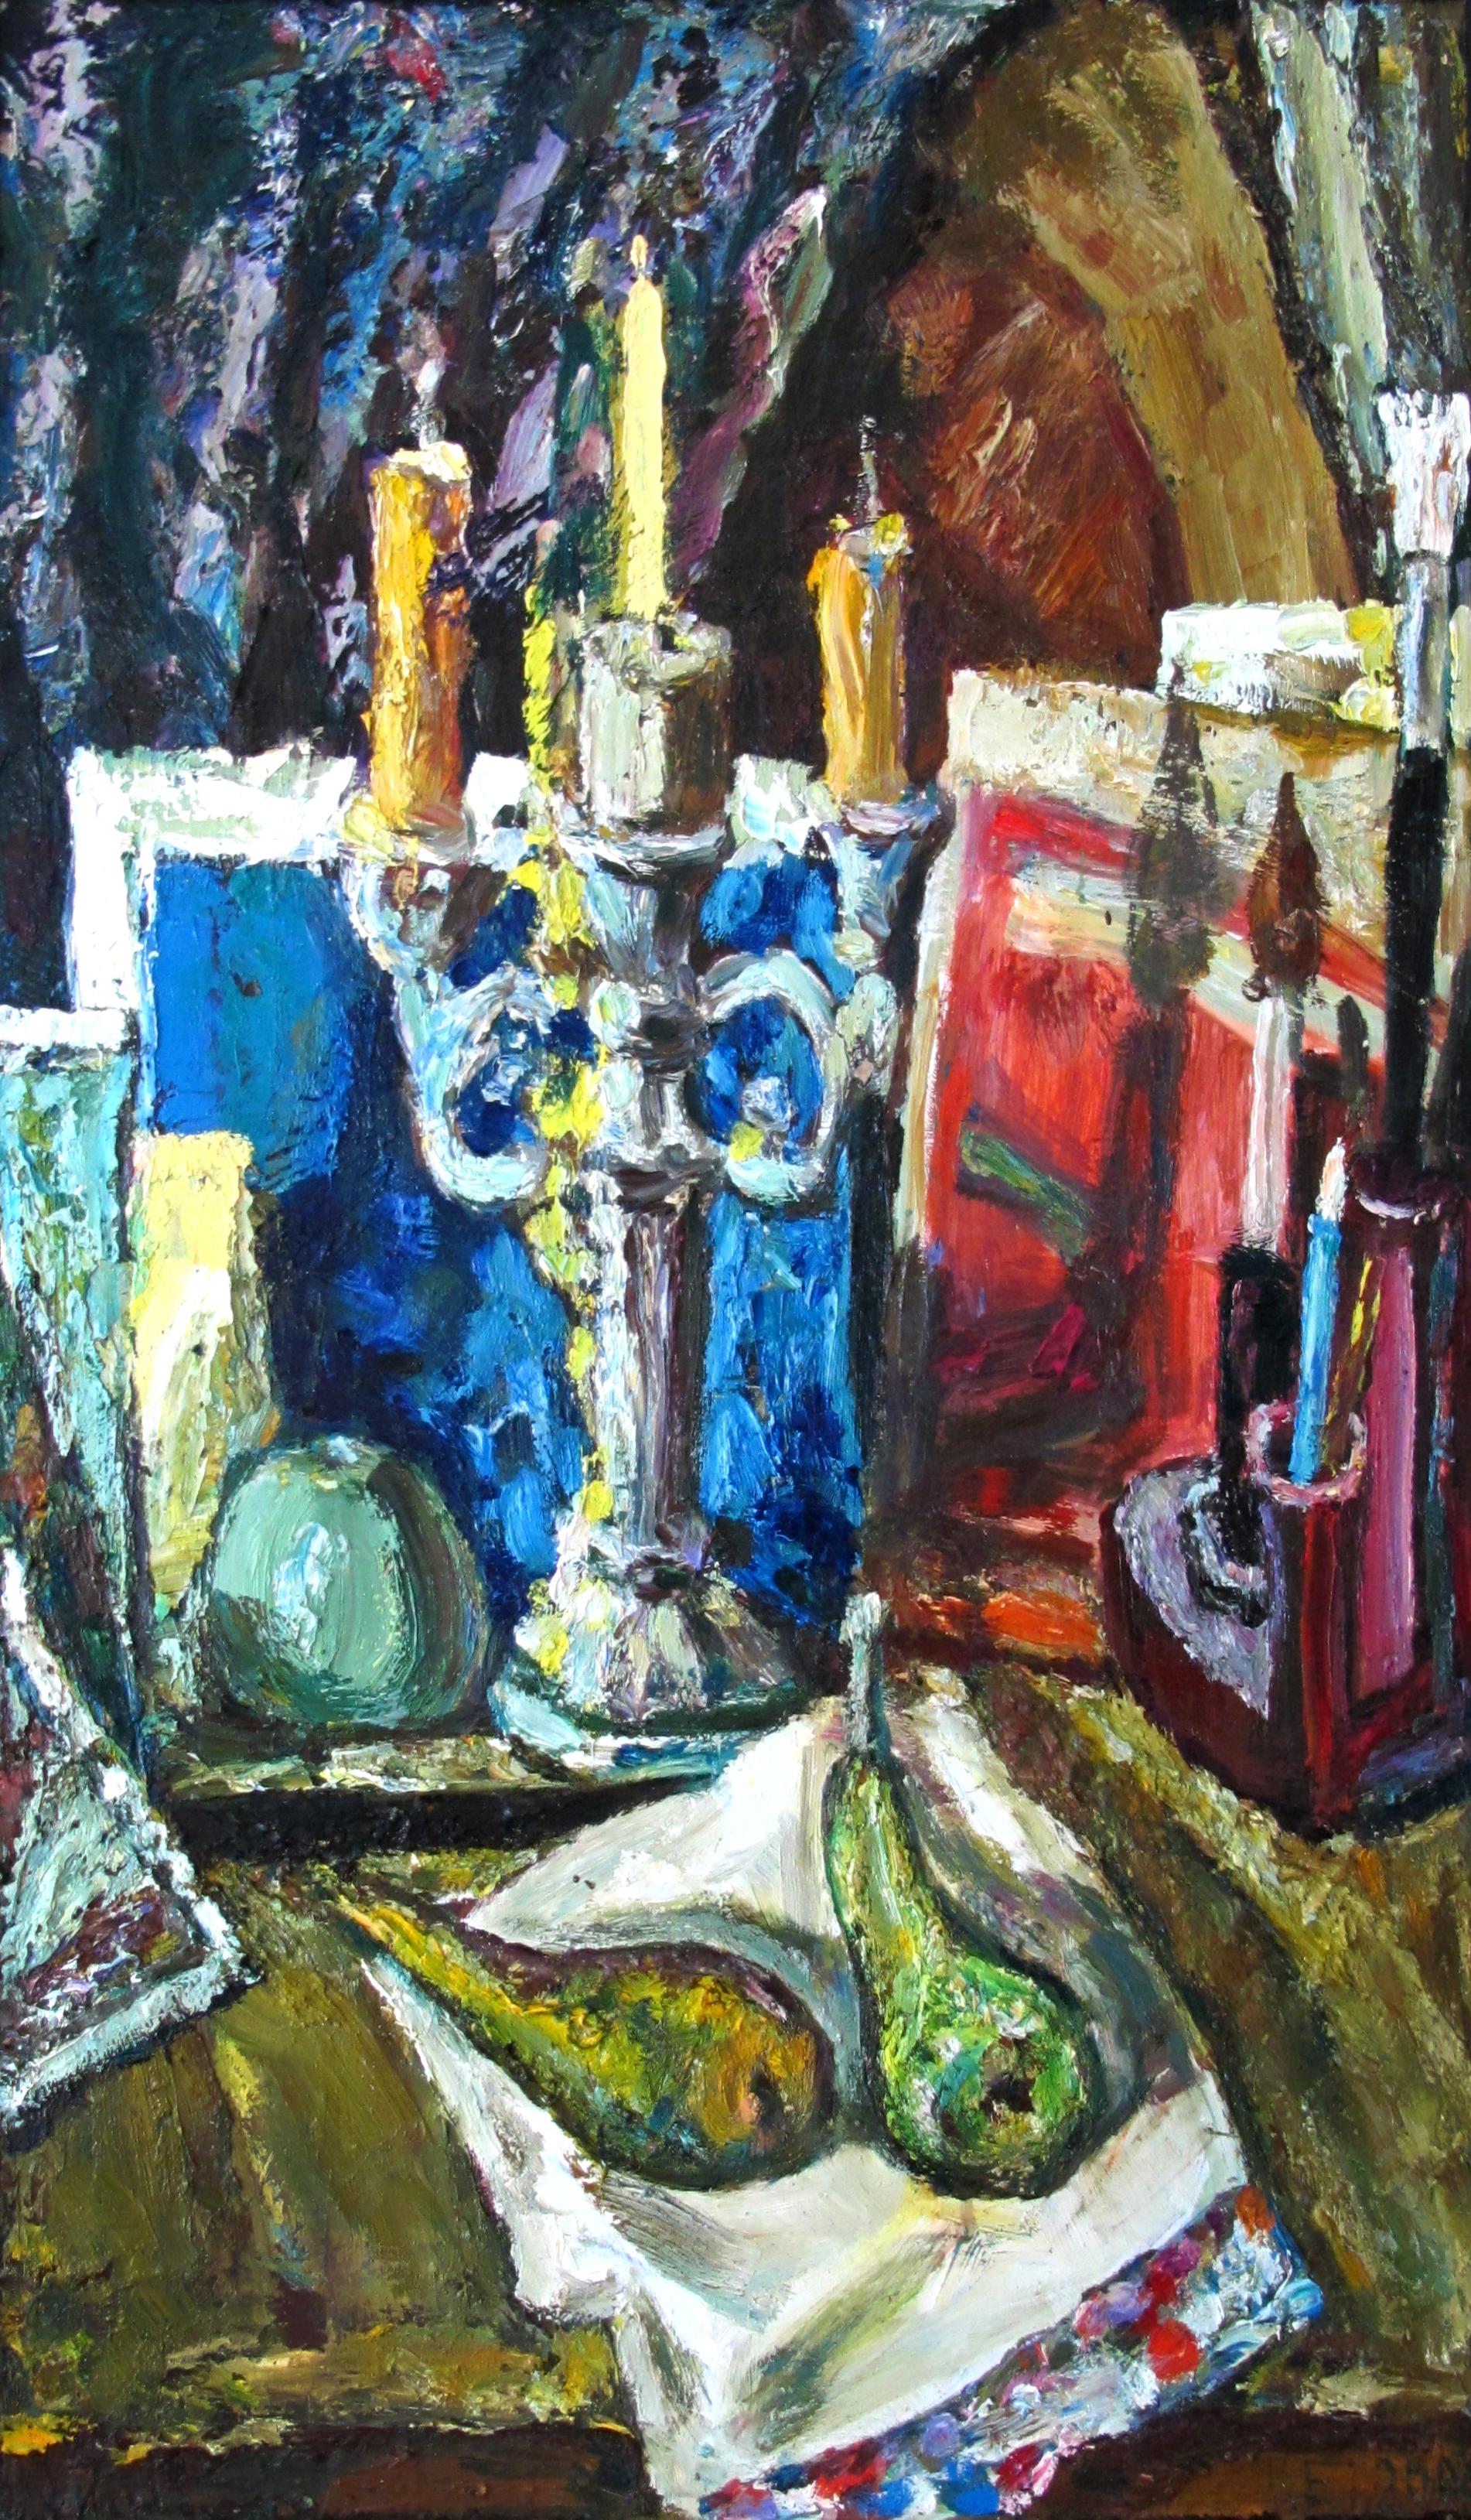 Still life with candlestick holder